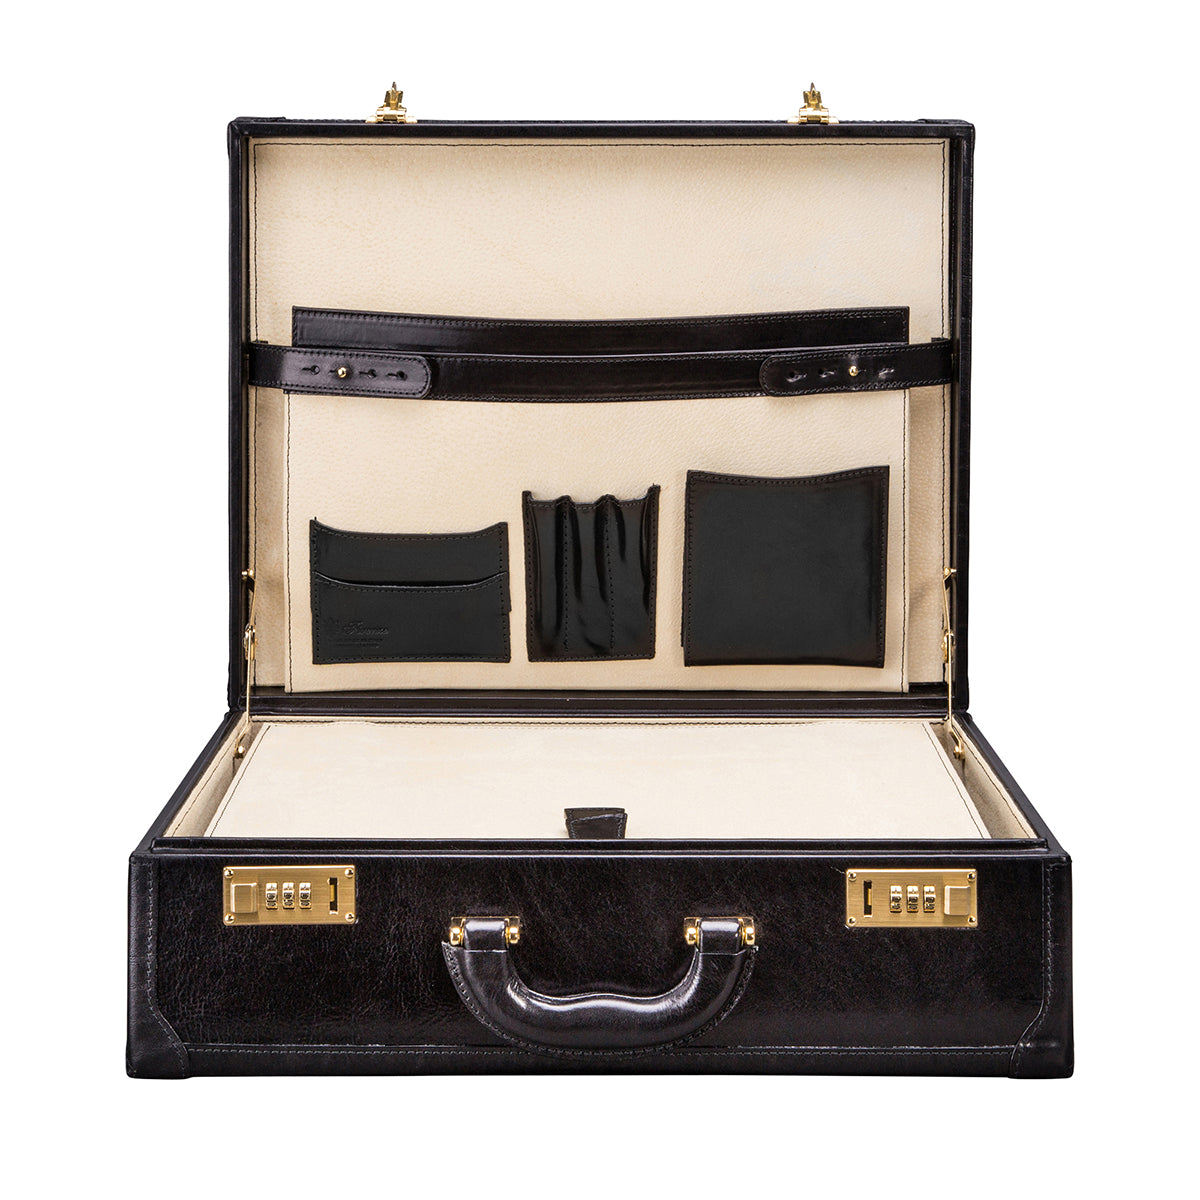 Image 6 of the 'Buroni' Black Veg-Tanned Leather Business Attaché  Case